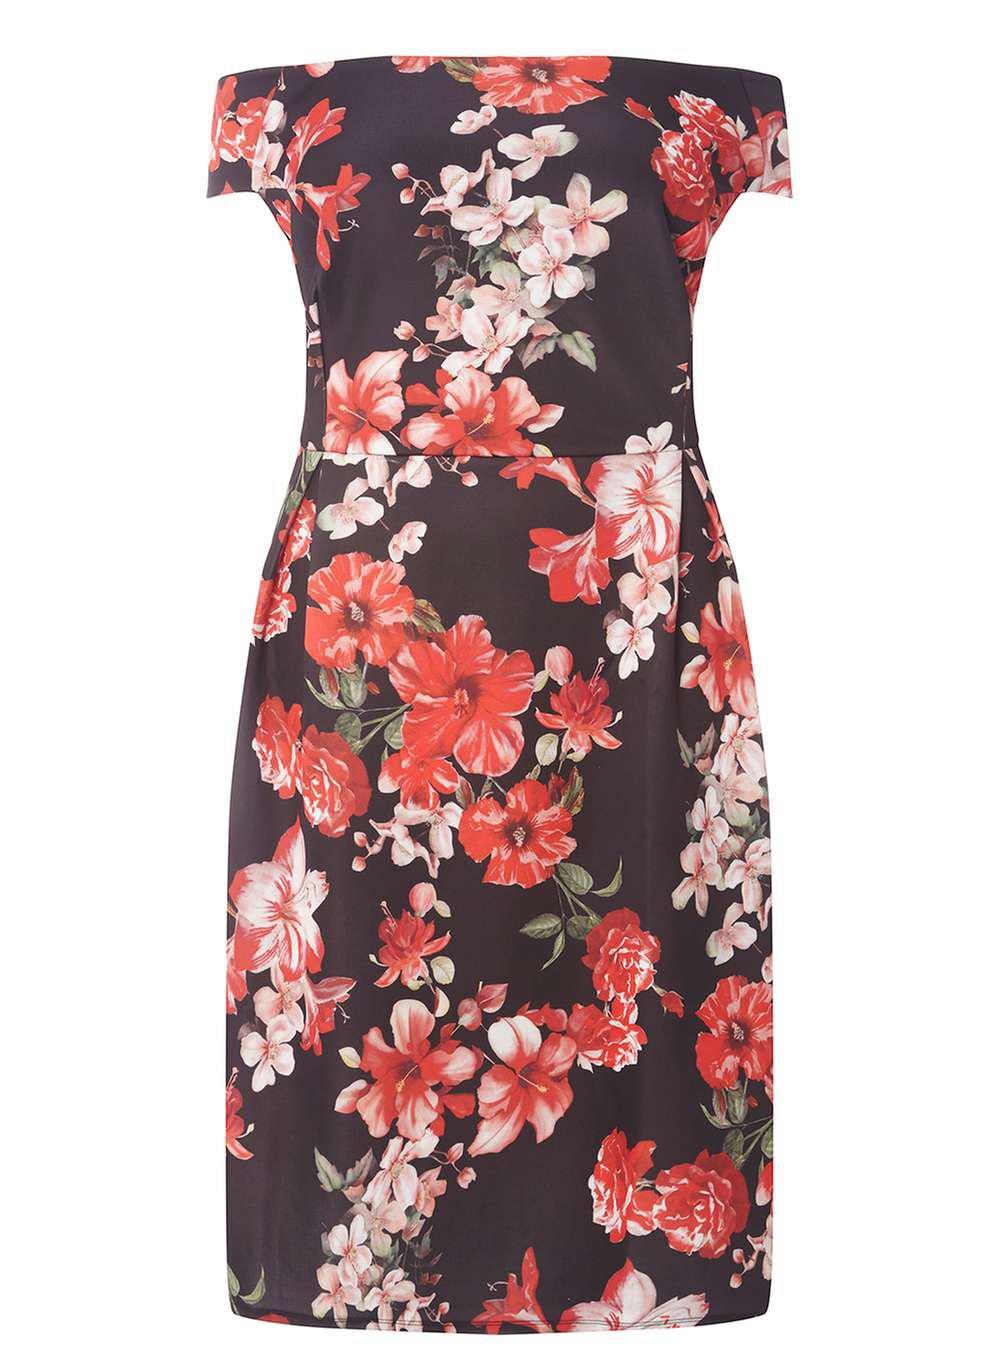 207a55c11e Gallery. Previously sold at: Dorothy Perkins · Women's Snakeskin Dresses ...